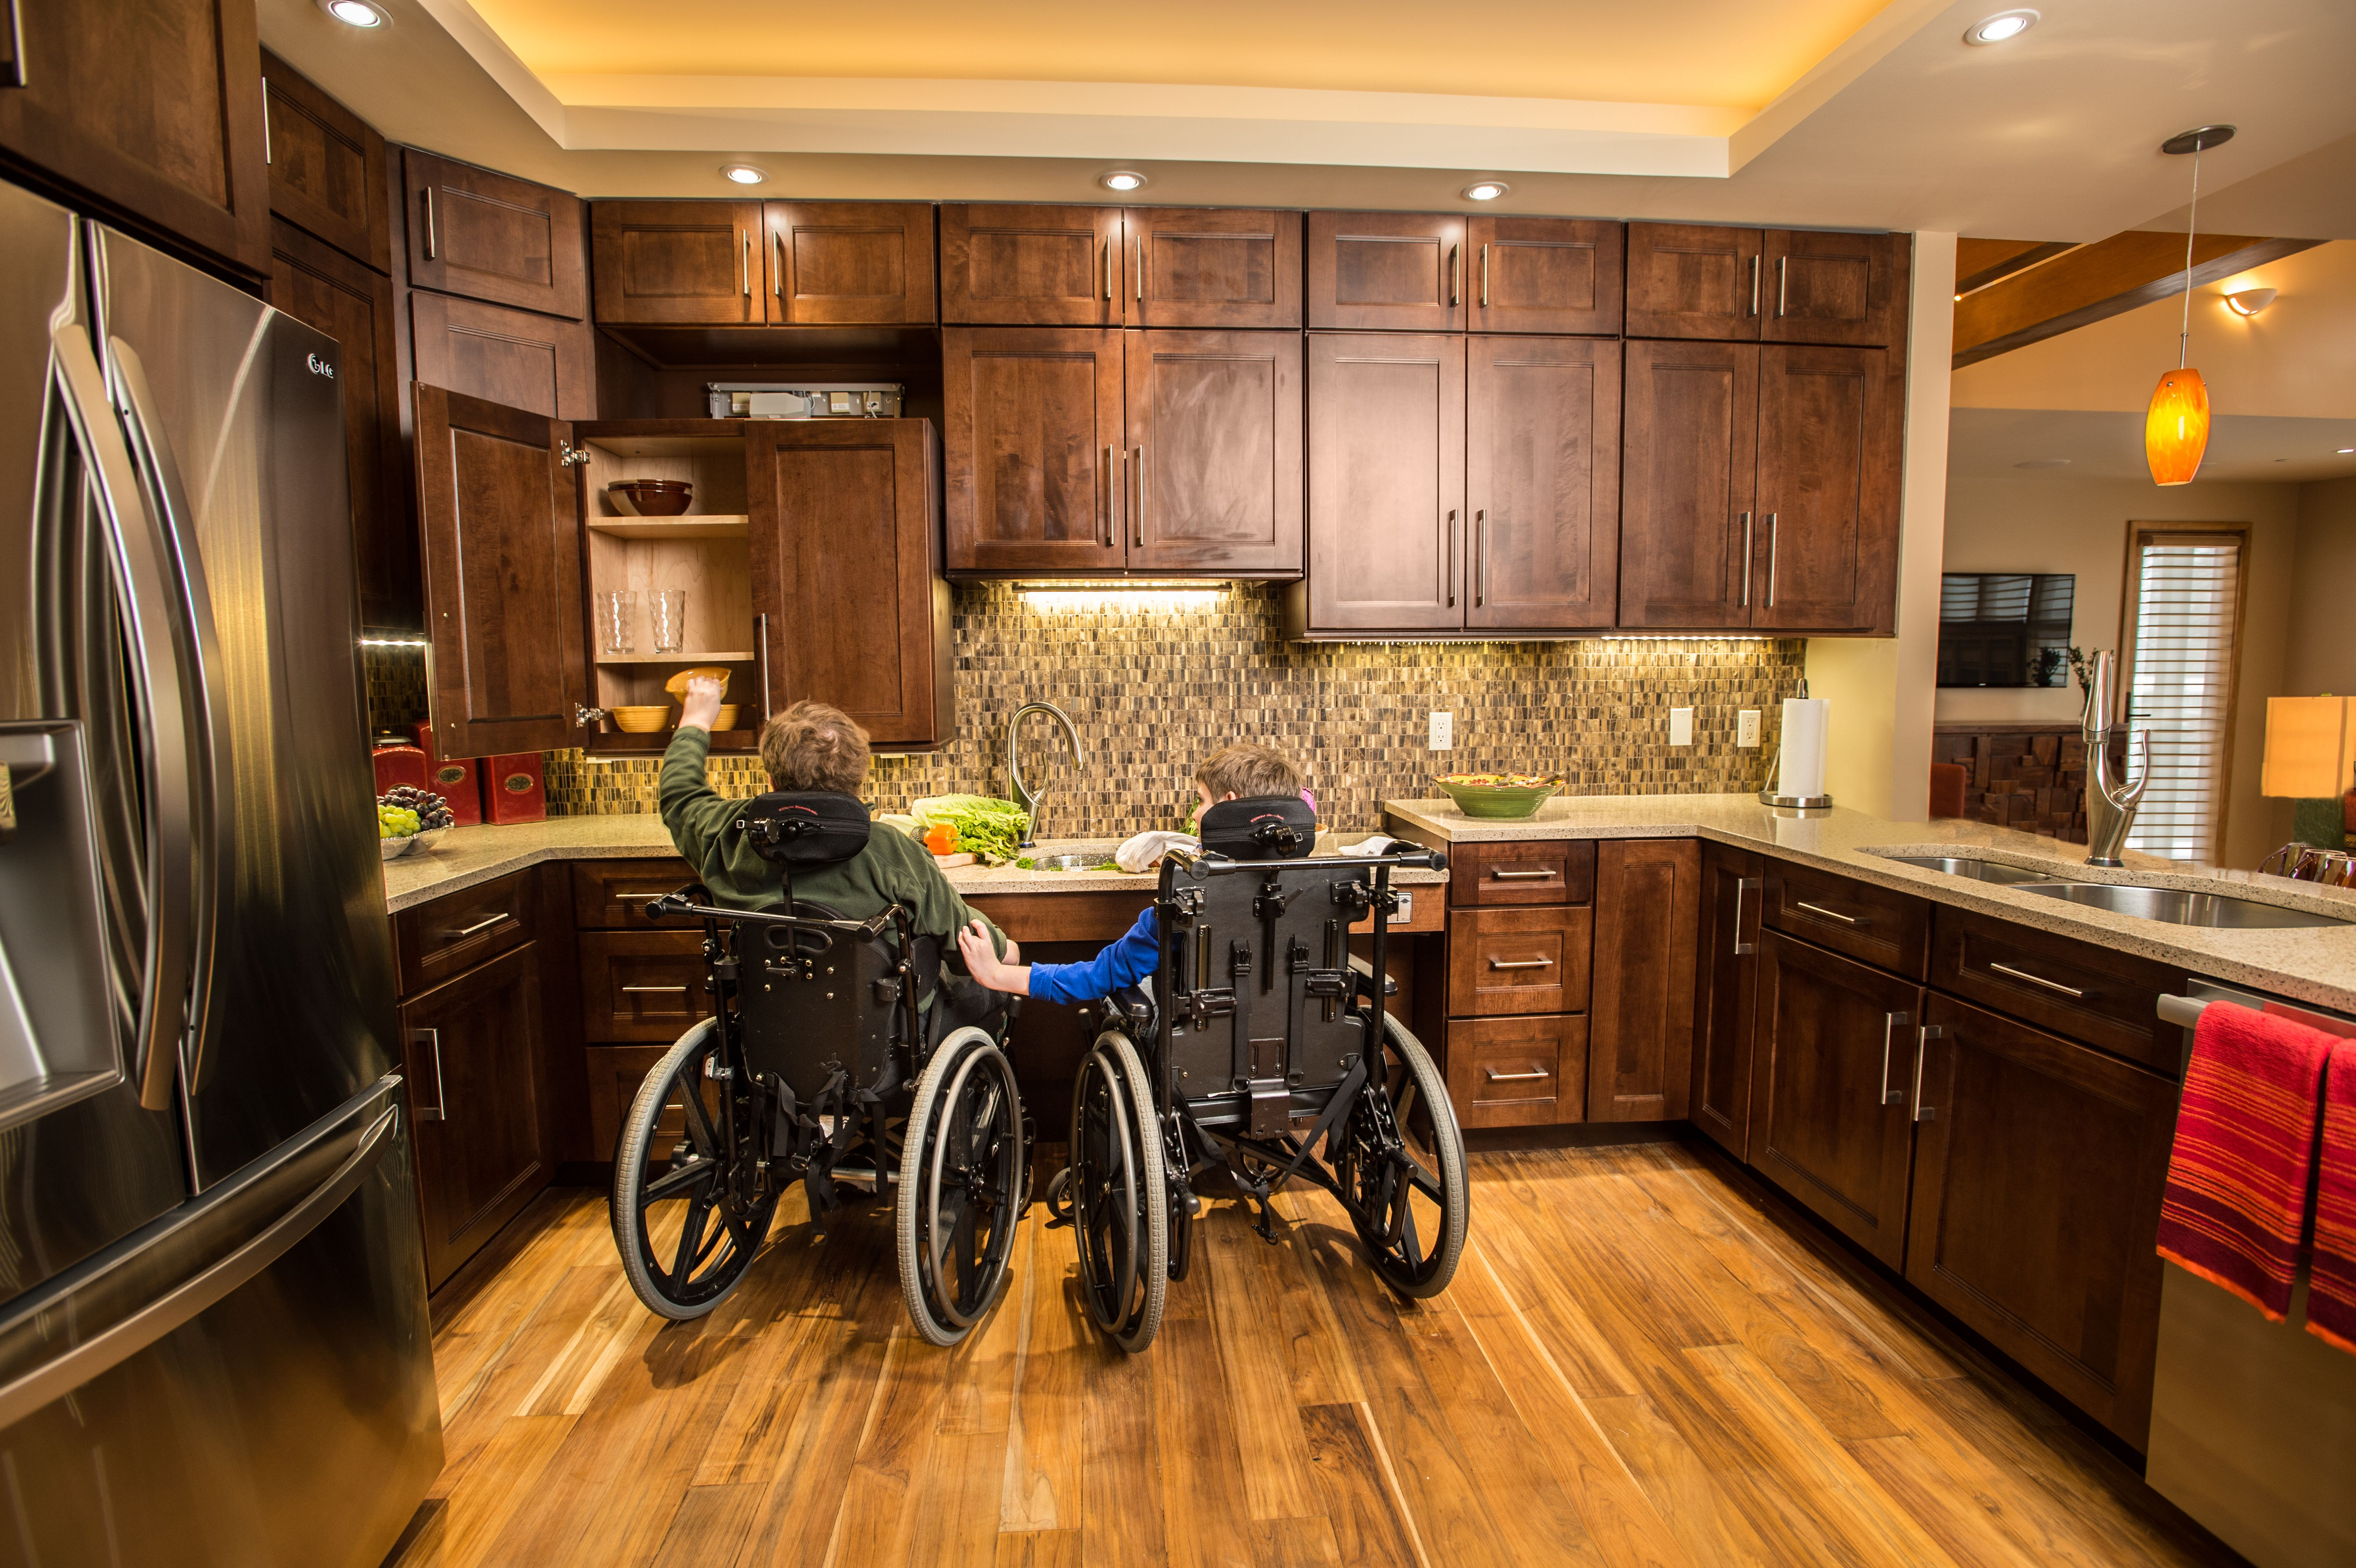 A Dream Design For The Disabled Oakton Parents Build A High Tech Home Their Boys Can Become Adults In Accessible House Dream Design House Design